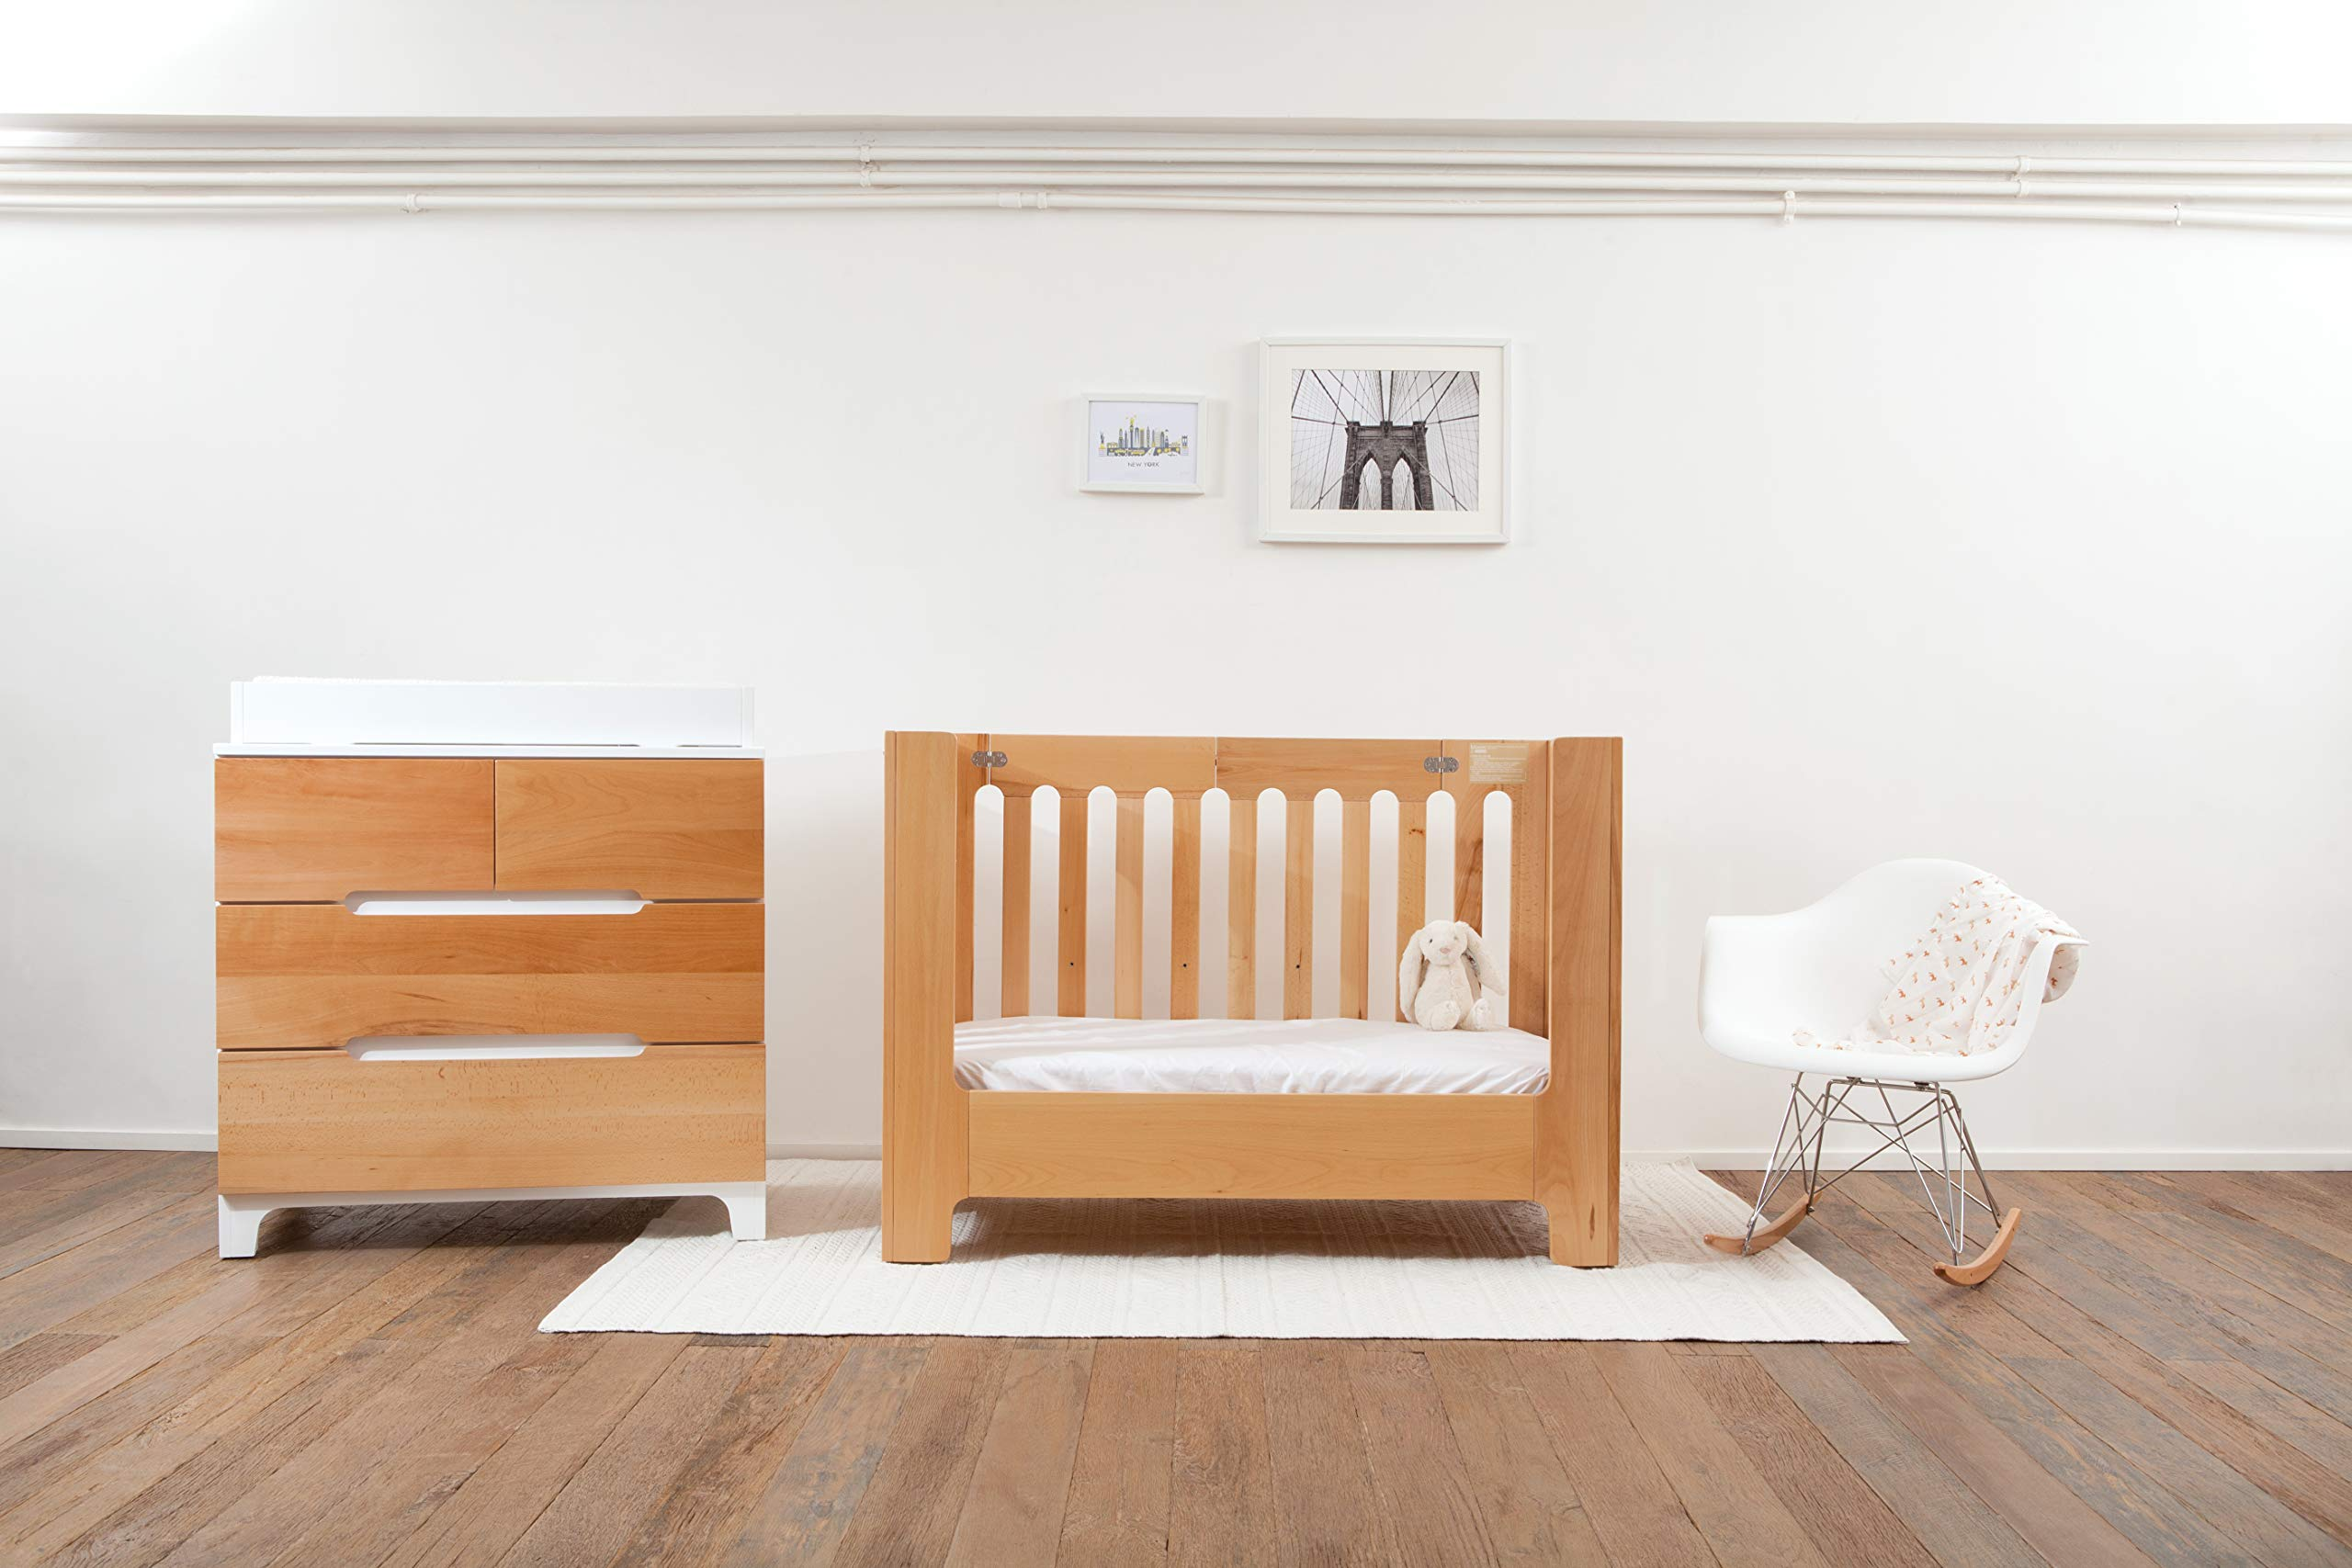 Bloom Alma Papa Baby Crib/Cot (Convertible, Sold Wood, 0-4 Years) (Natural)  Alma Papa is suitable from newborn to 4 years, beautiful, modern solid wood crib with 2 mattress heights allow use as a bassinet & full-size crib patented compact-fold construction for easy storage & transport (durable storage bag available separately) open slats on all four sides maximize all important air-flow 6